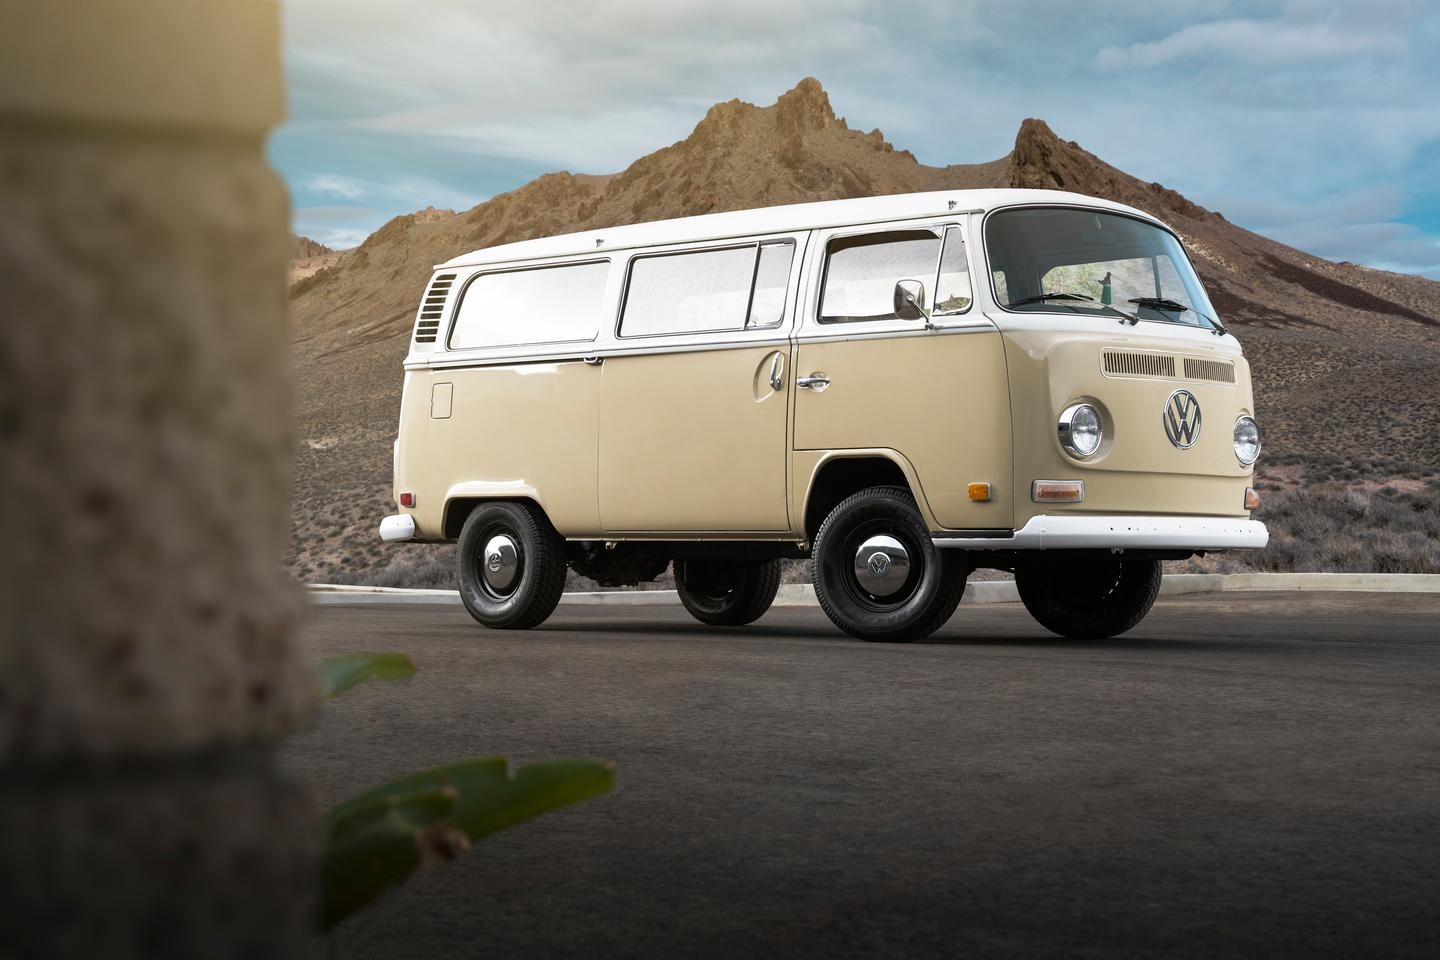 Volkswagen and EV West turn a 1972 VW Type 2 into an all-electric van